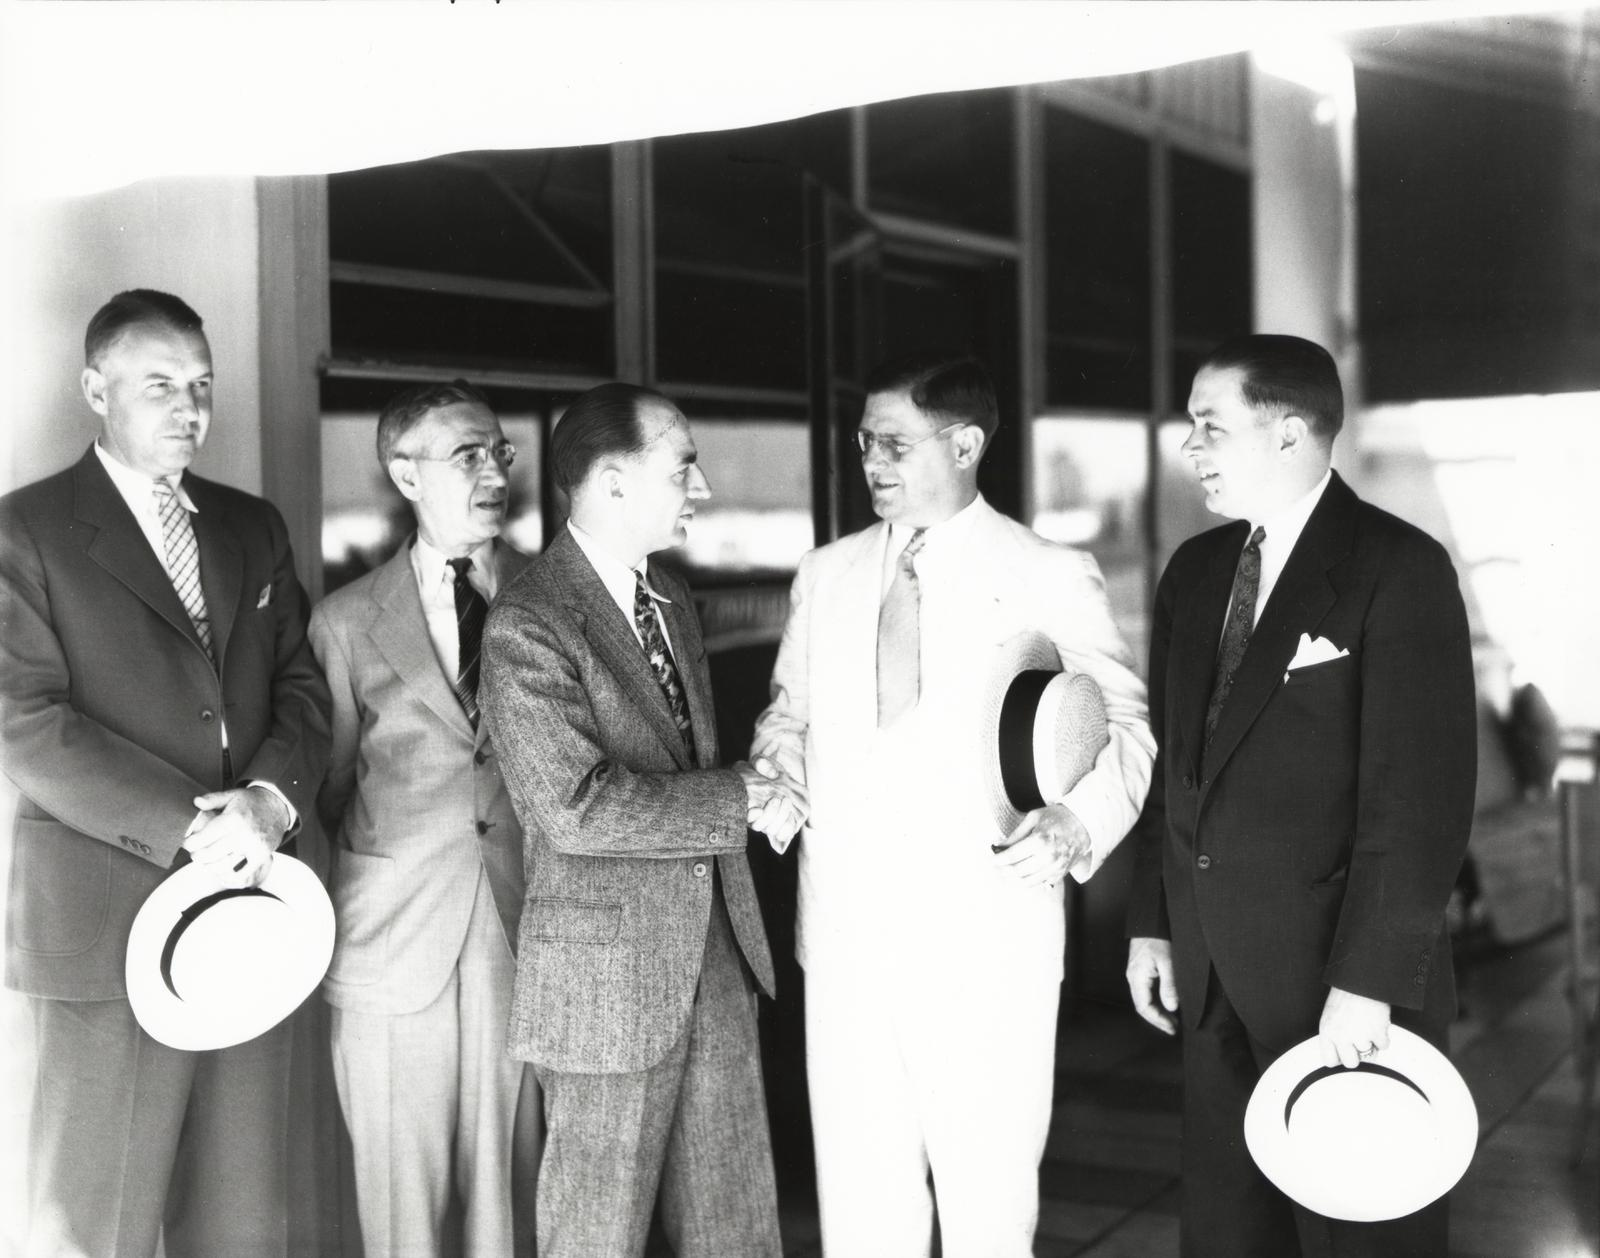 Open URL Lenox R Lohr General Manager Of A Century Progress Greeting The